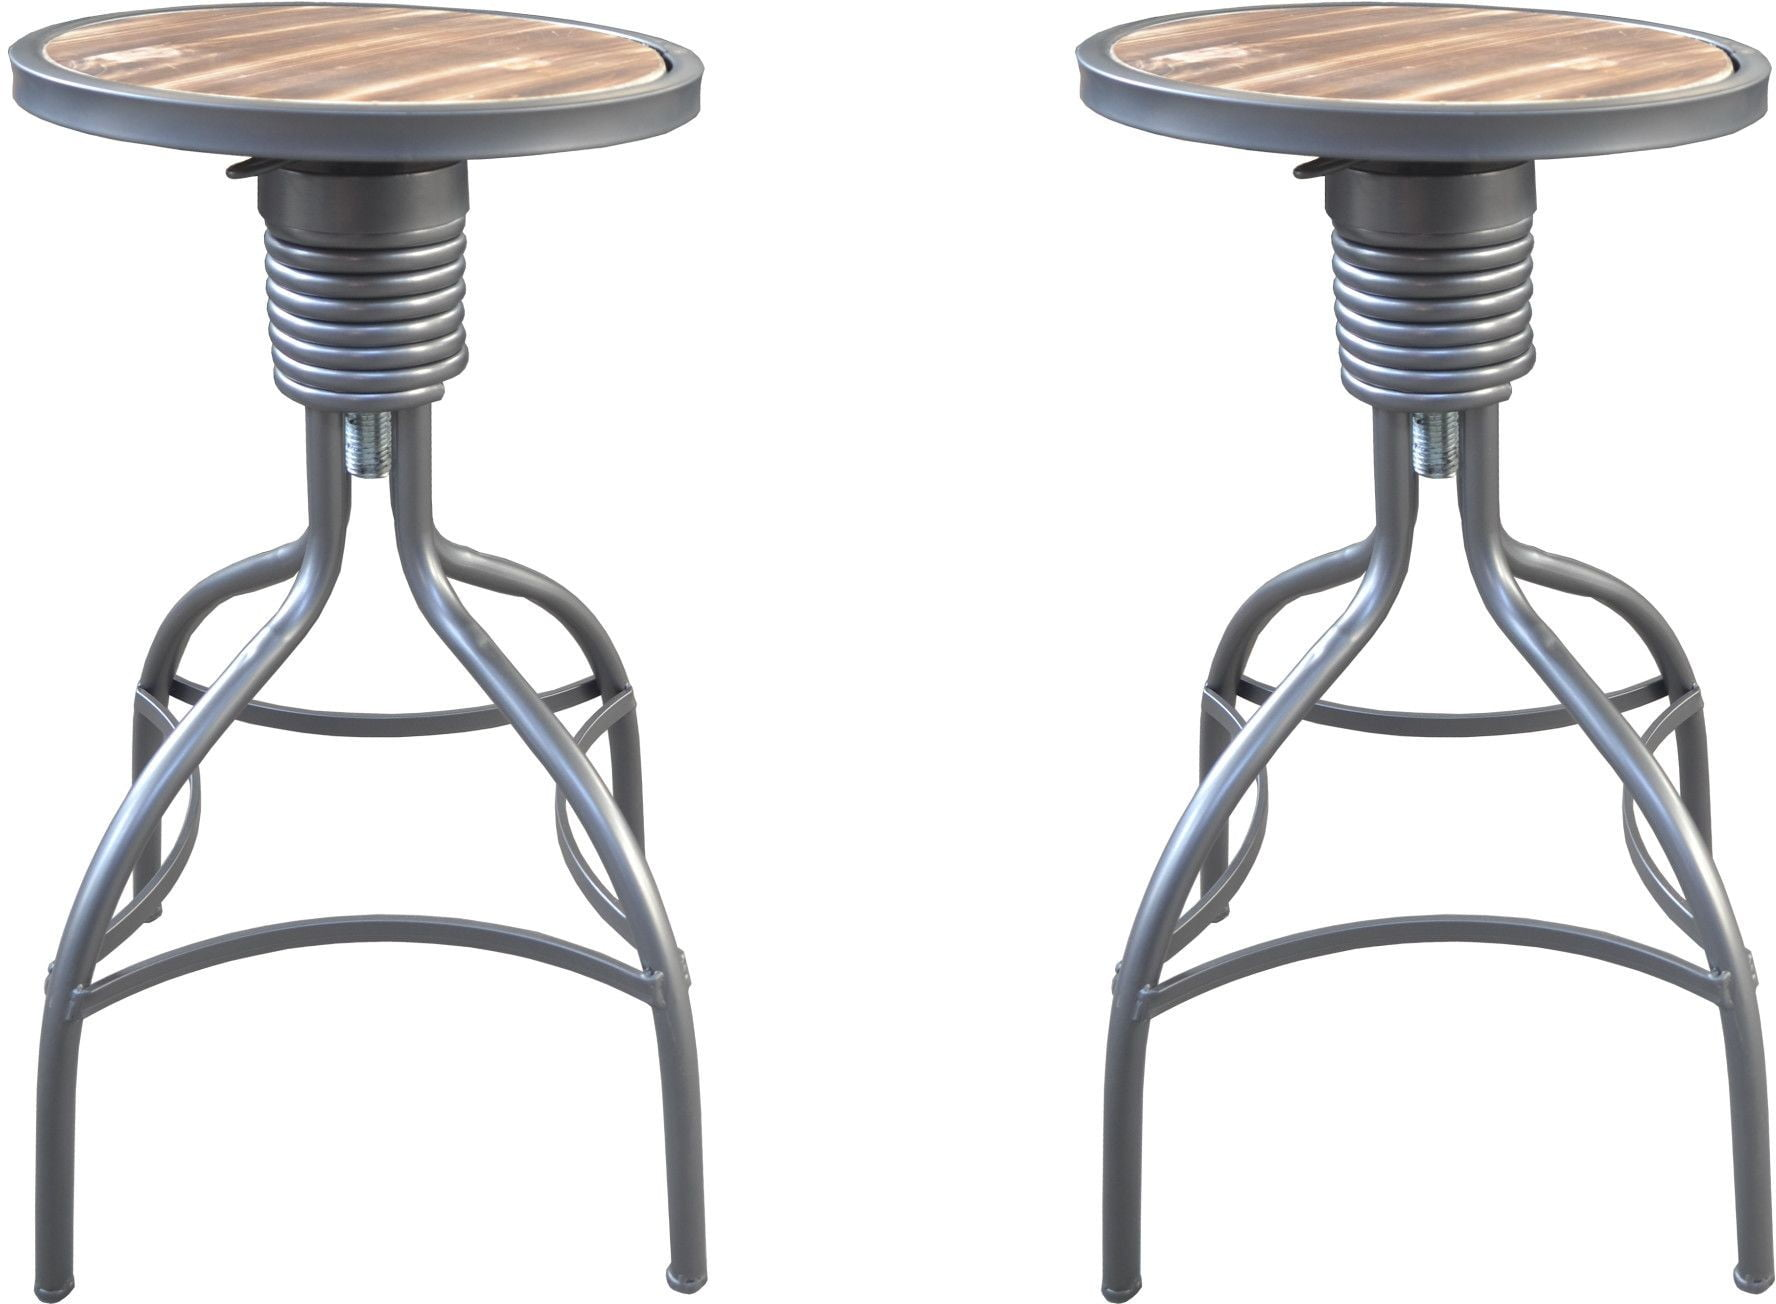 Laurell Hill Patina Gray And Rustic Fir 24 Bar Stool Set Of 2 From